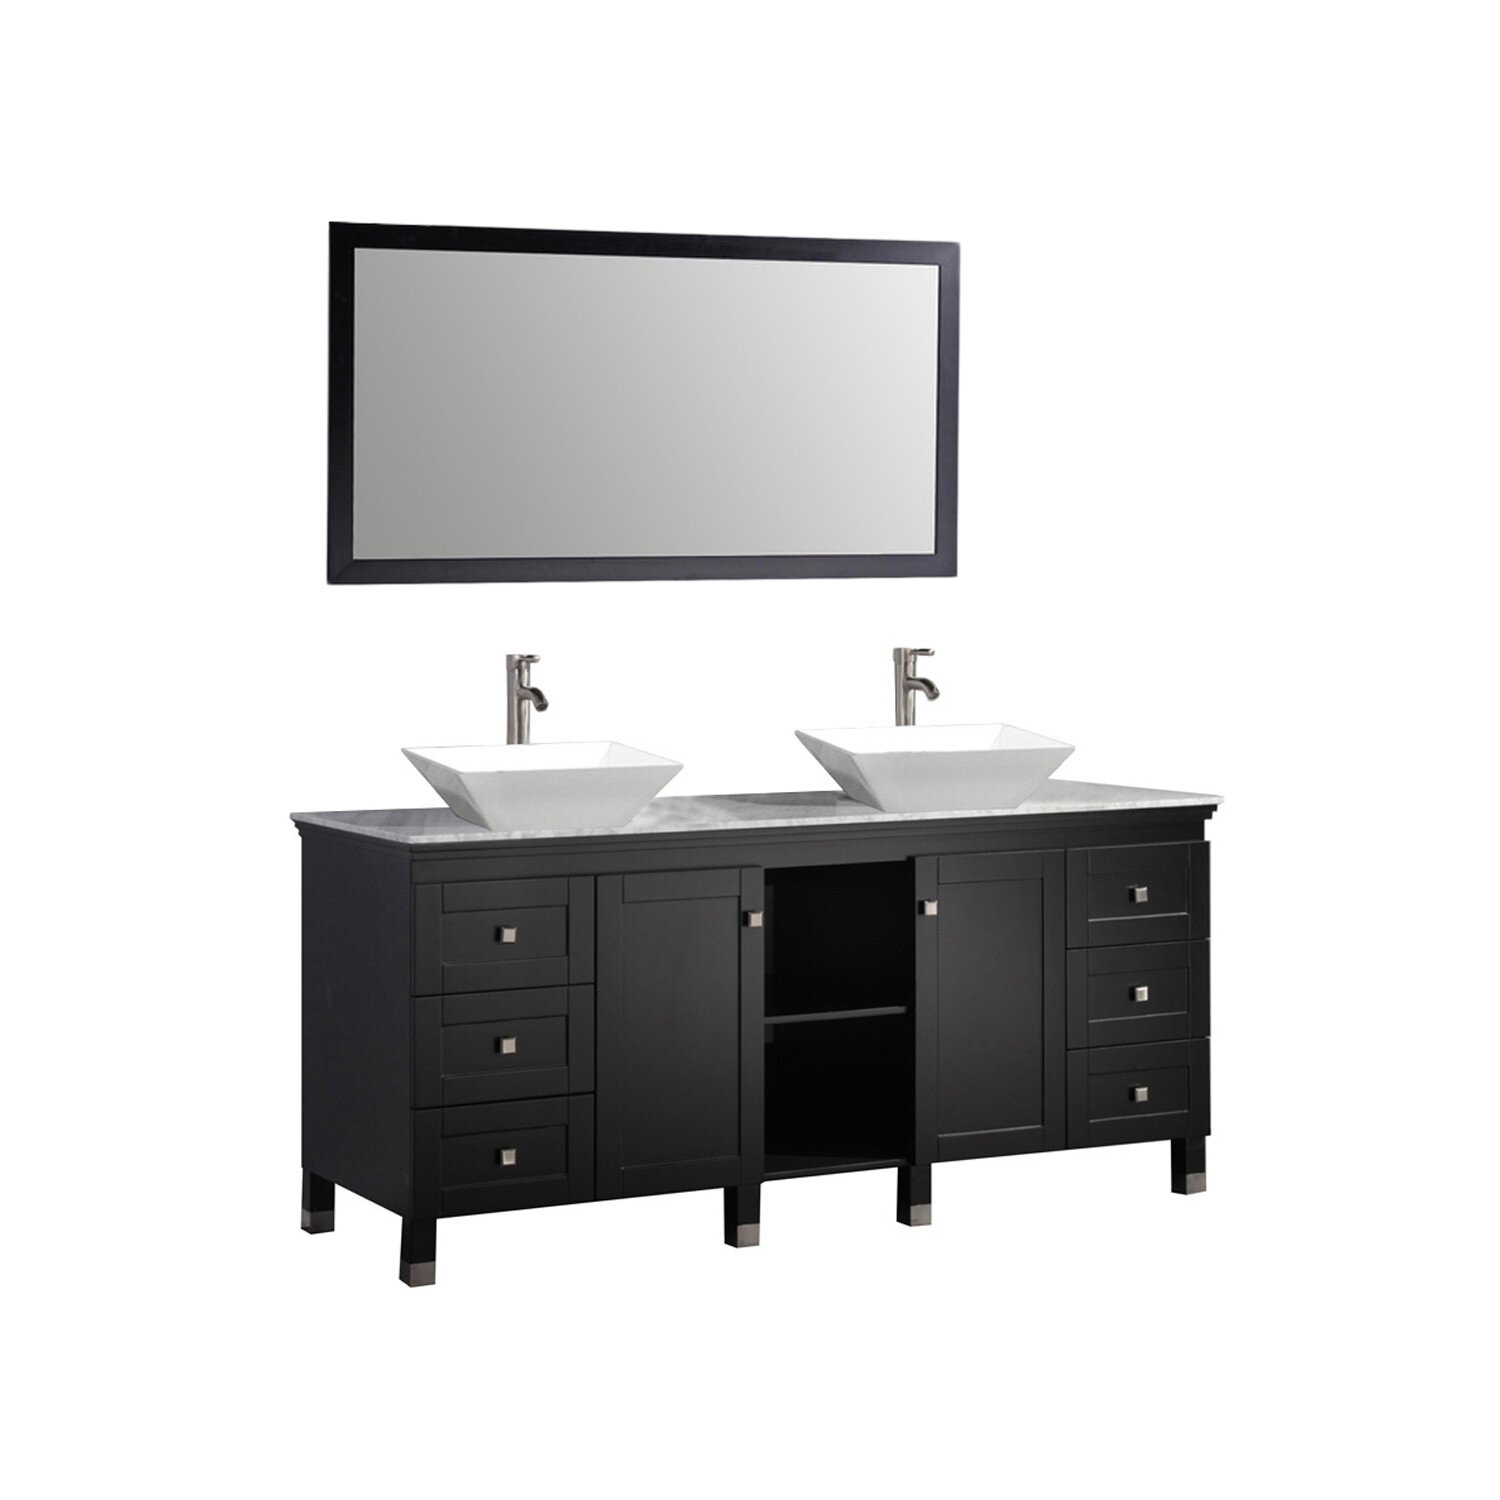 Mtdvanities Belarus 72 Double Sink Bathroom Vanity Set With Mirror Reviews Wayfair